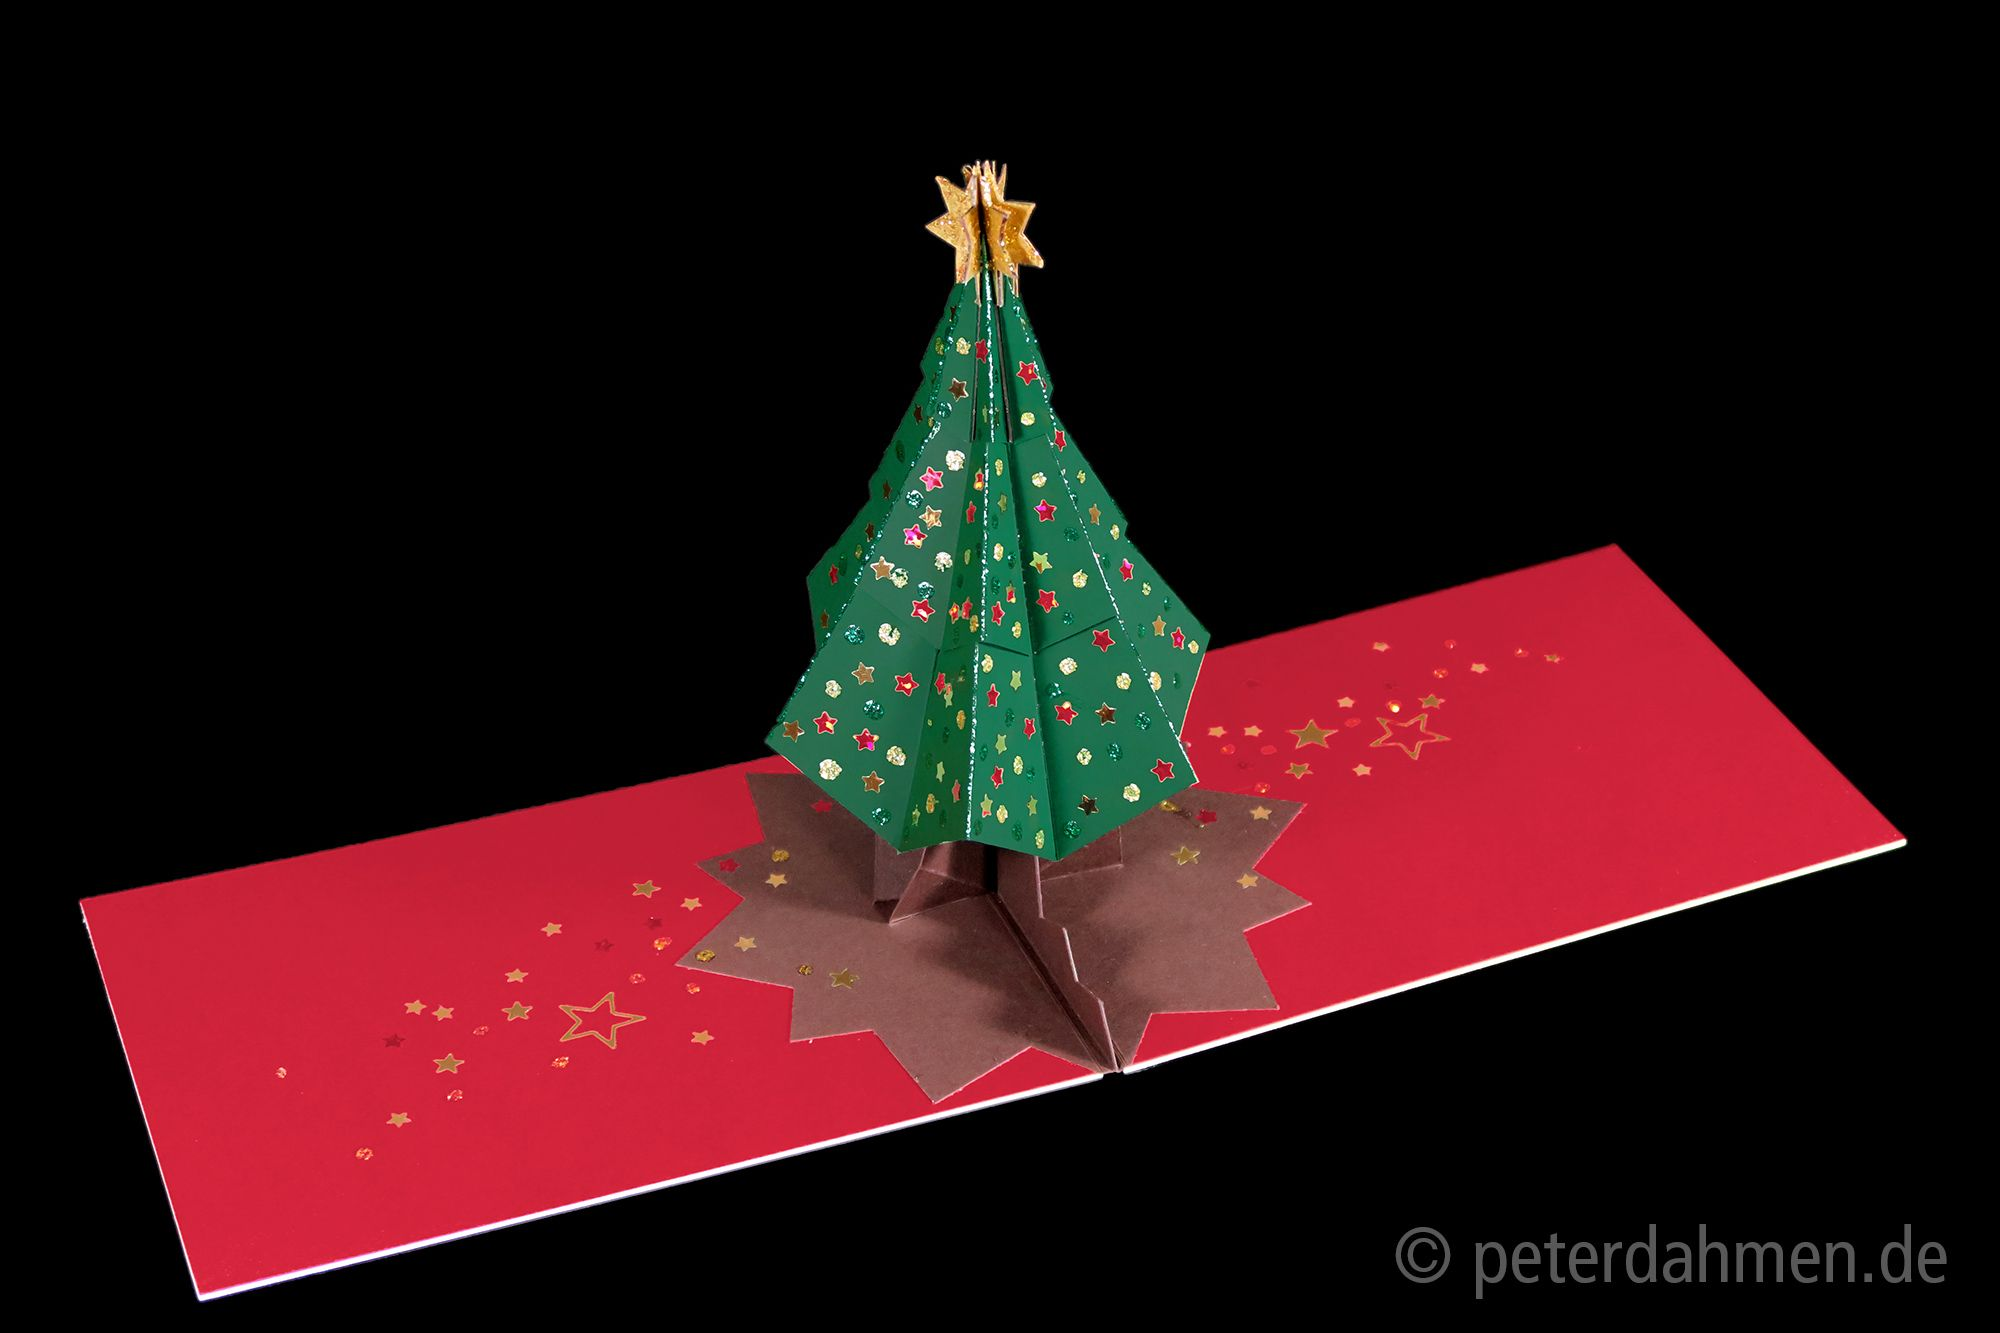 Pop Up Card Tutorial And Template Free For Private Use Design By Peter Dahmen Peterdahmen De Christmas Tree Cards Christmas Scrapbook Pop Up Card Templates